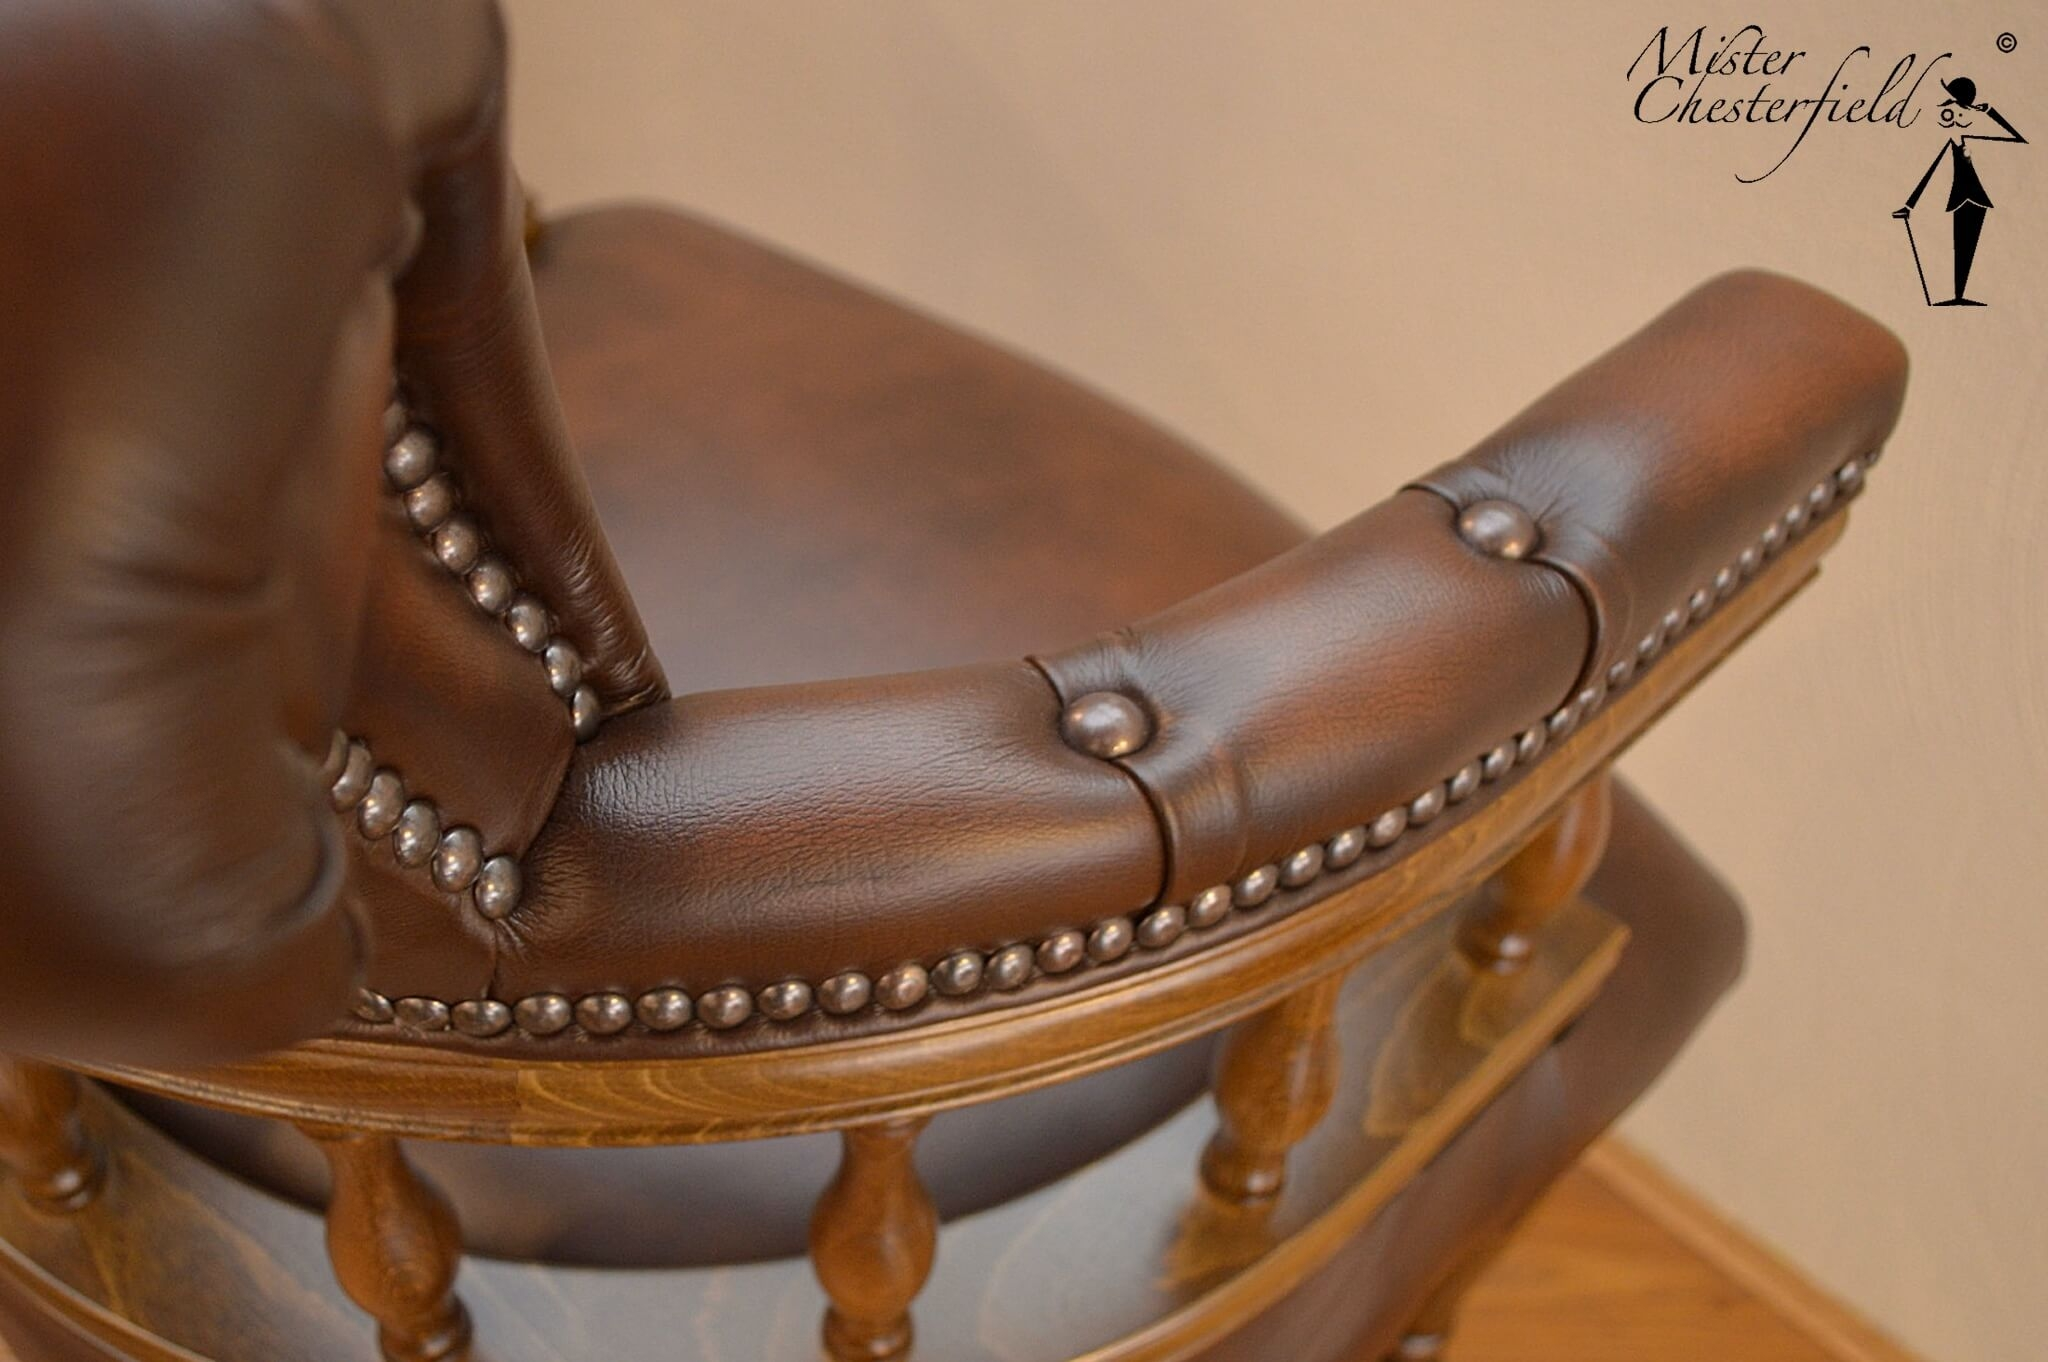 chesterfield_captains_chair_detail_1